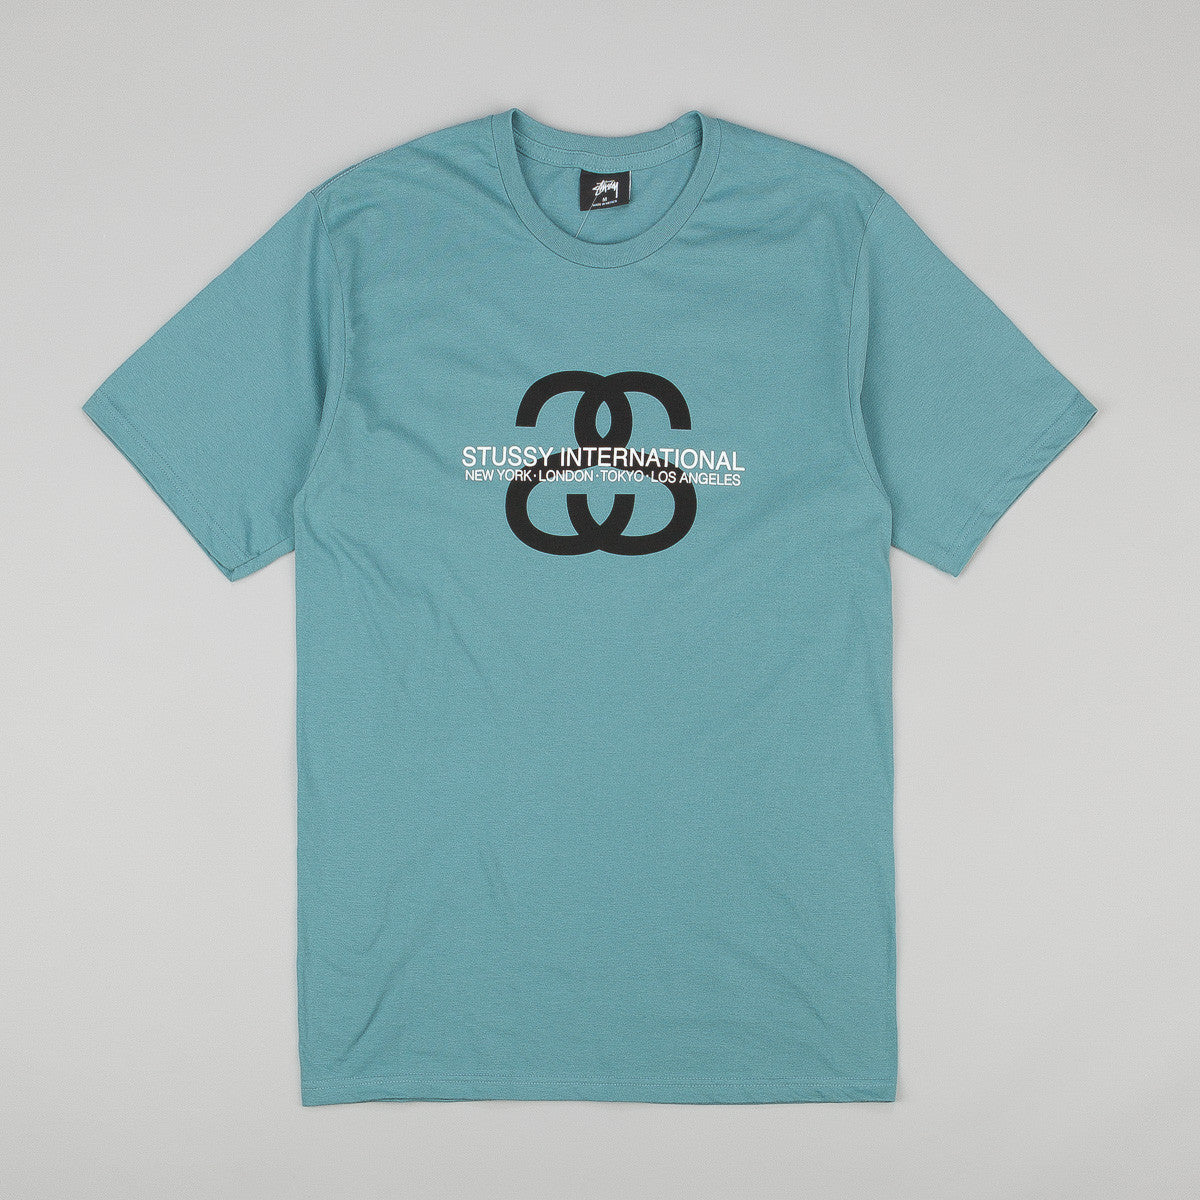 Stussy SS Link International T-Shirt - Steel